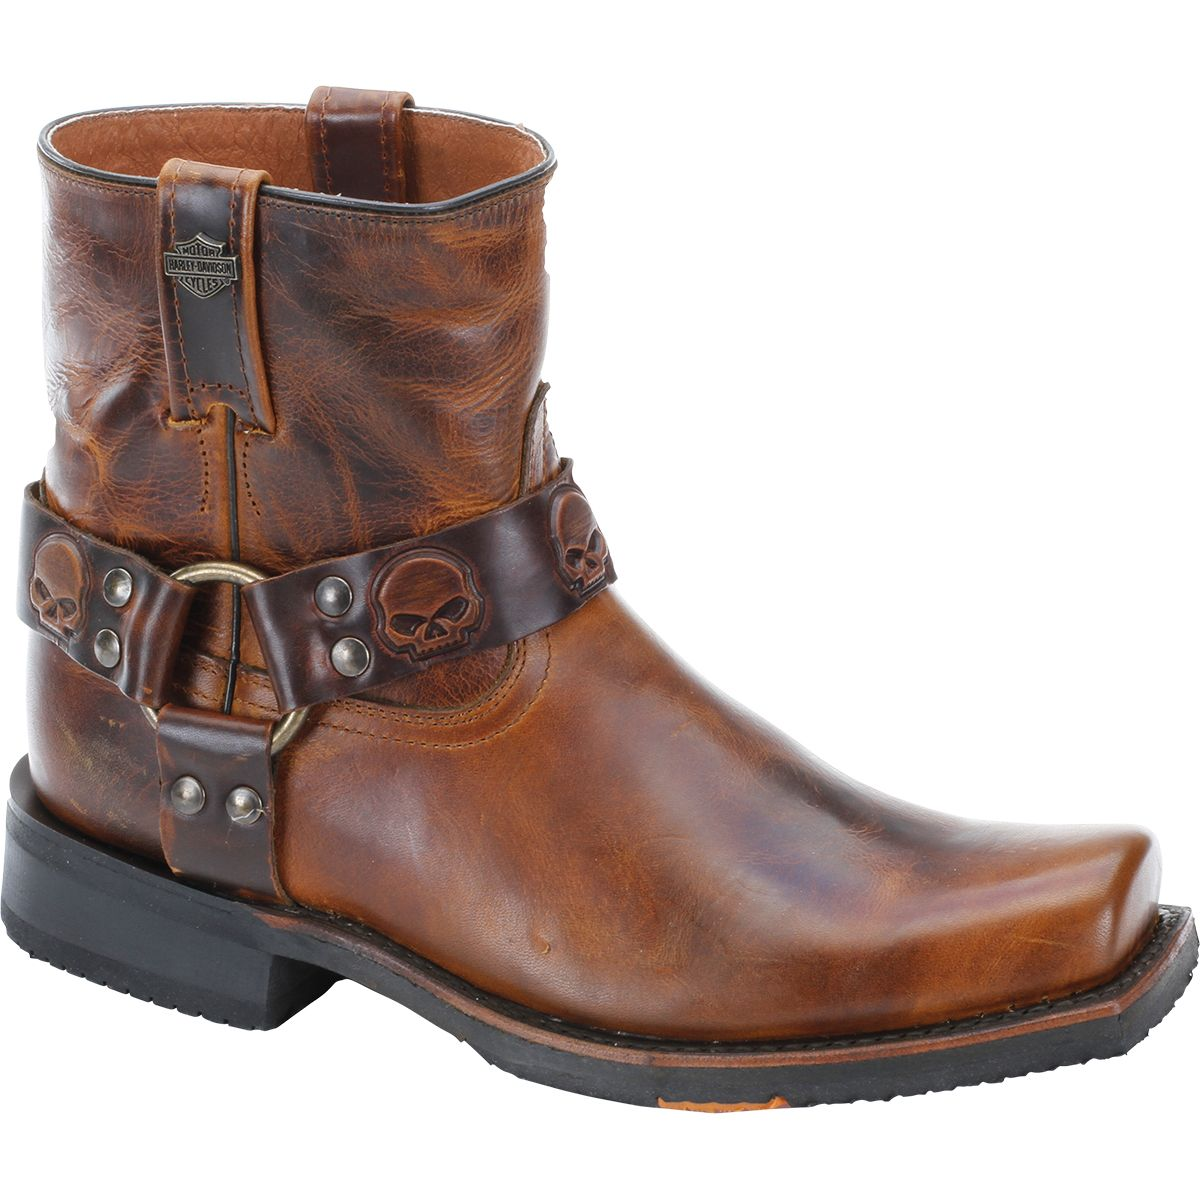 34b38839d0c Harley-Davidson Footwear Thornton boots in brown are part of the ...